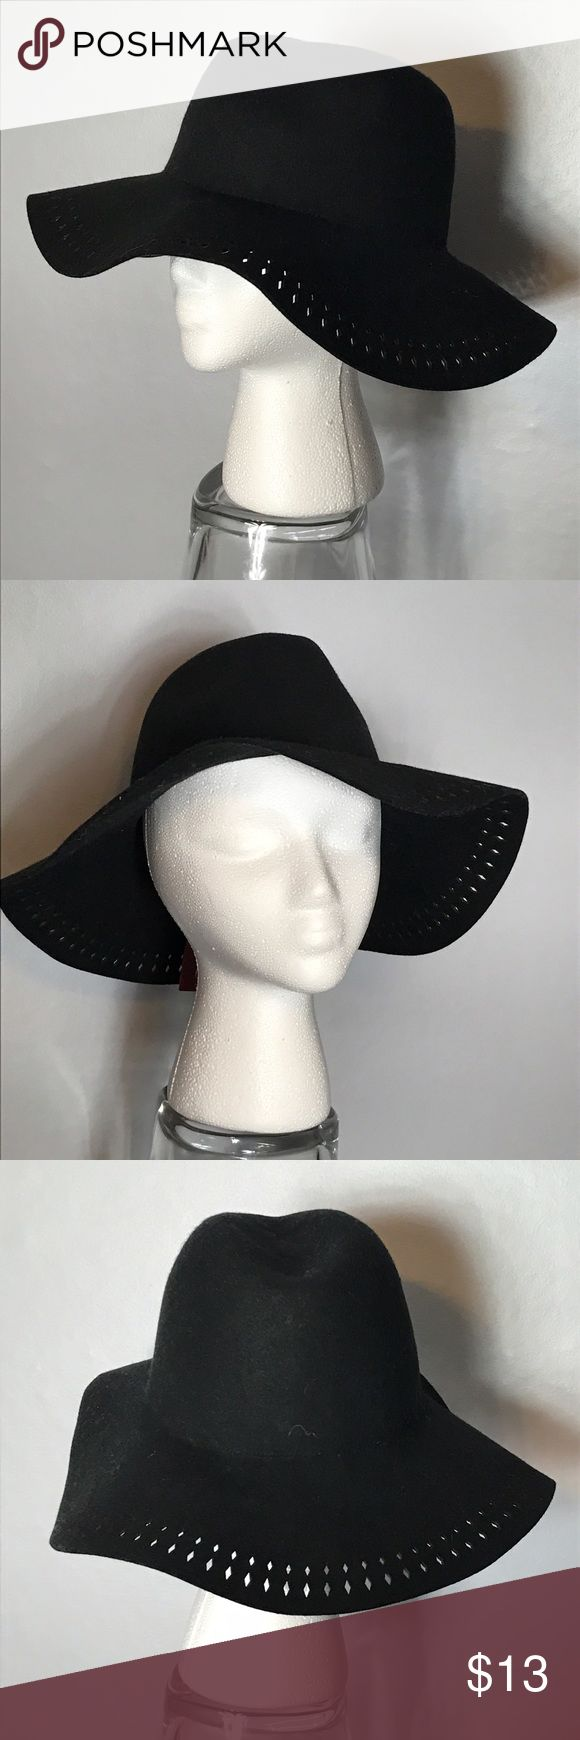 Floppy black wool hat Absolutely stunning. Brand-new with tags. Laser cut outs give it an accented look around the brim Accessories Hats